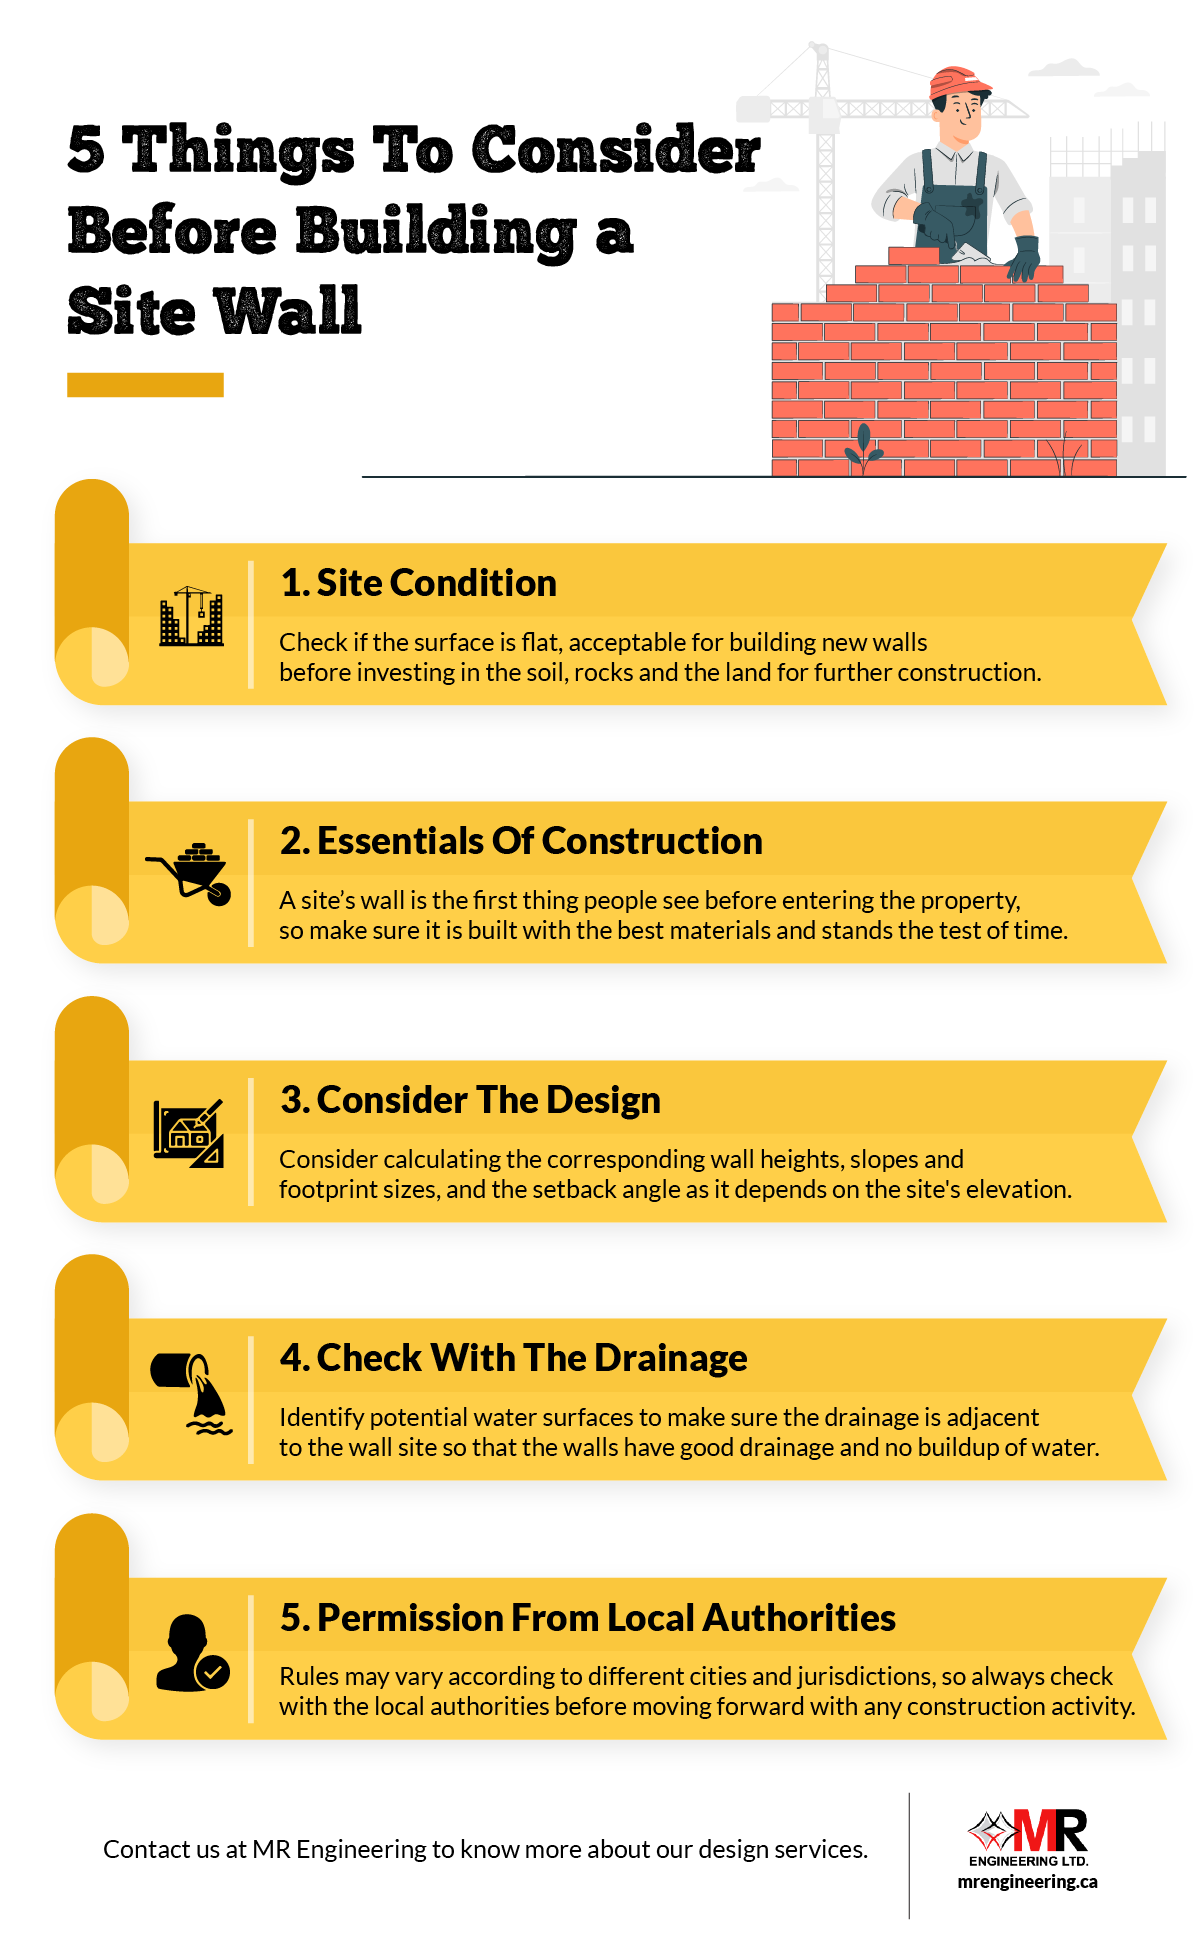 5 Things To Consider Before Building a Site Wall